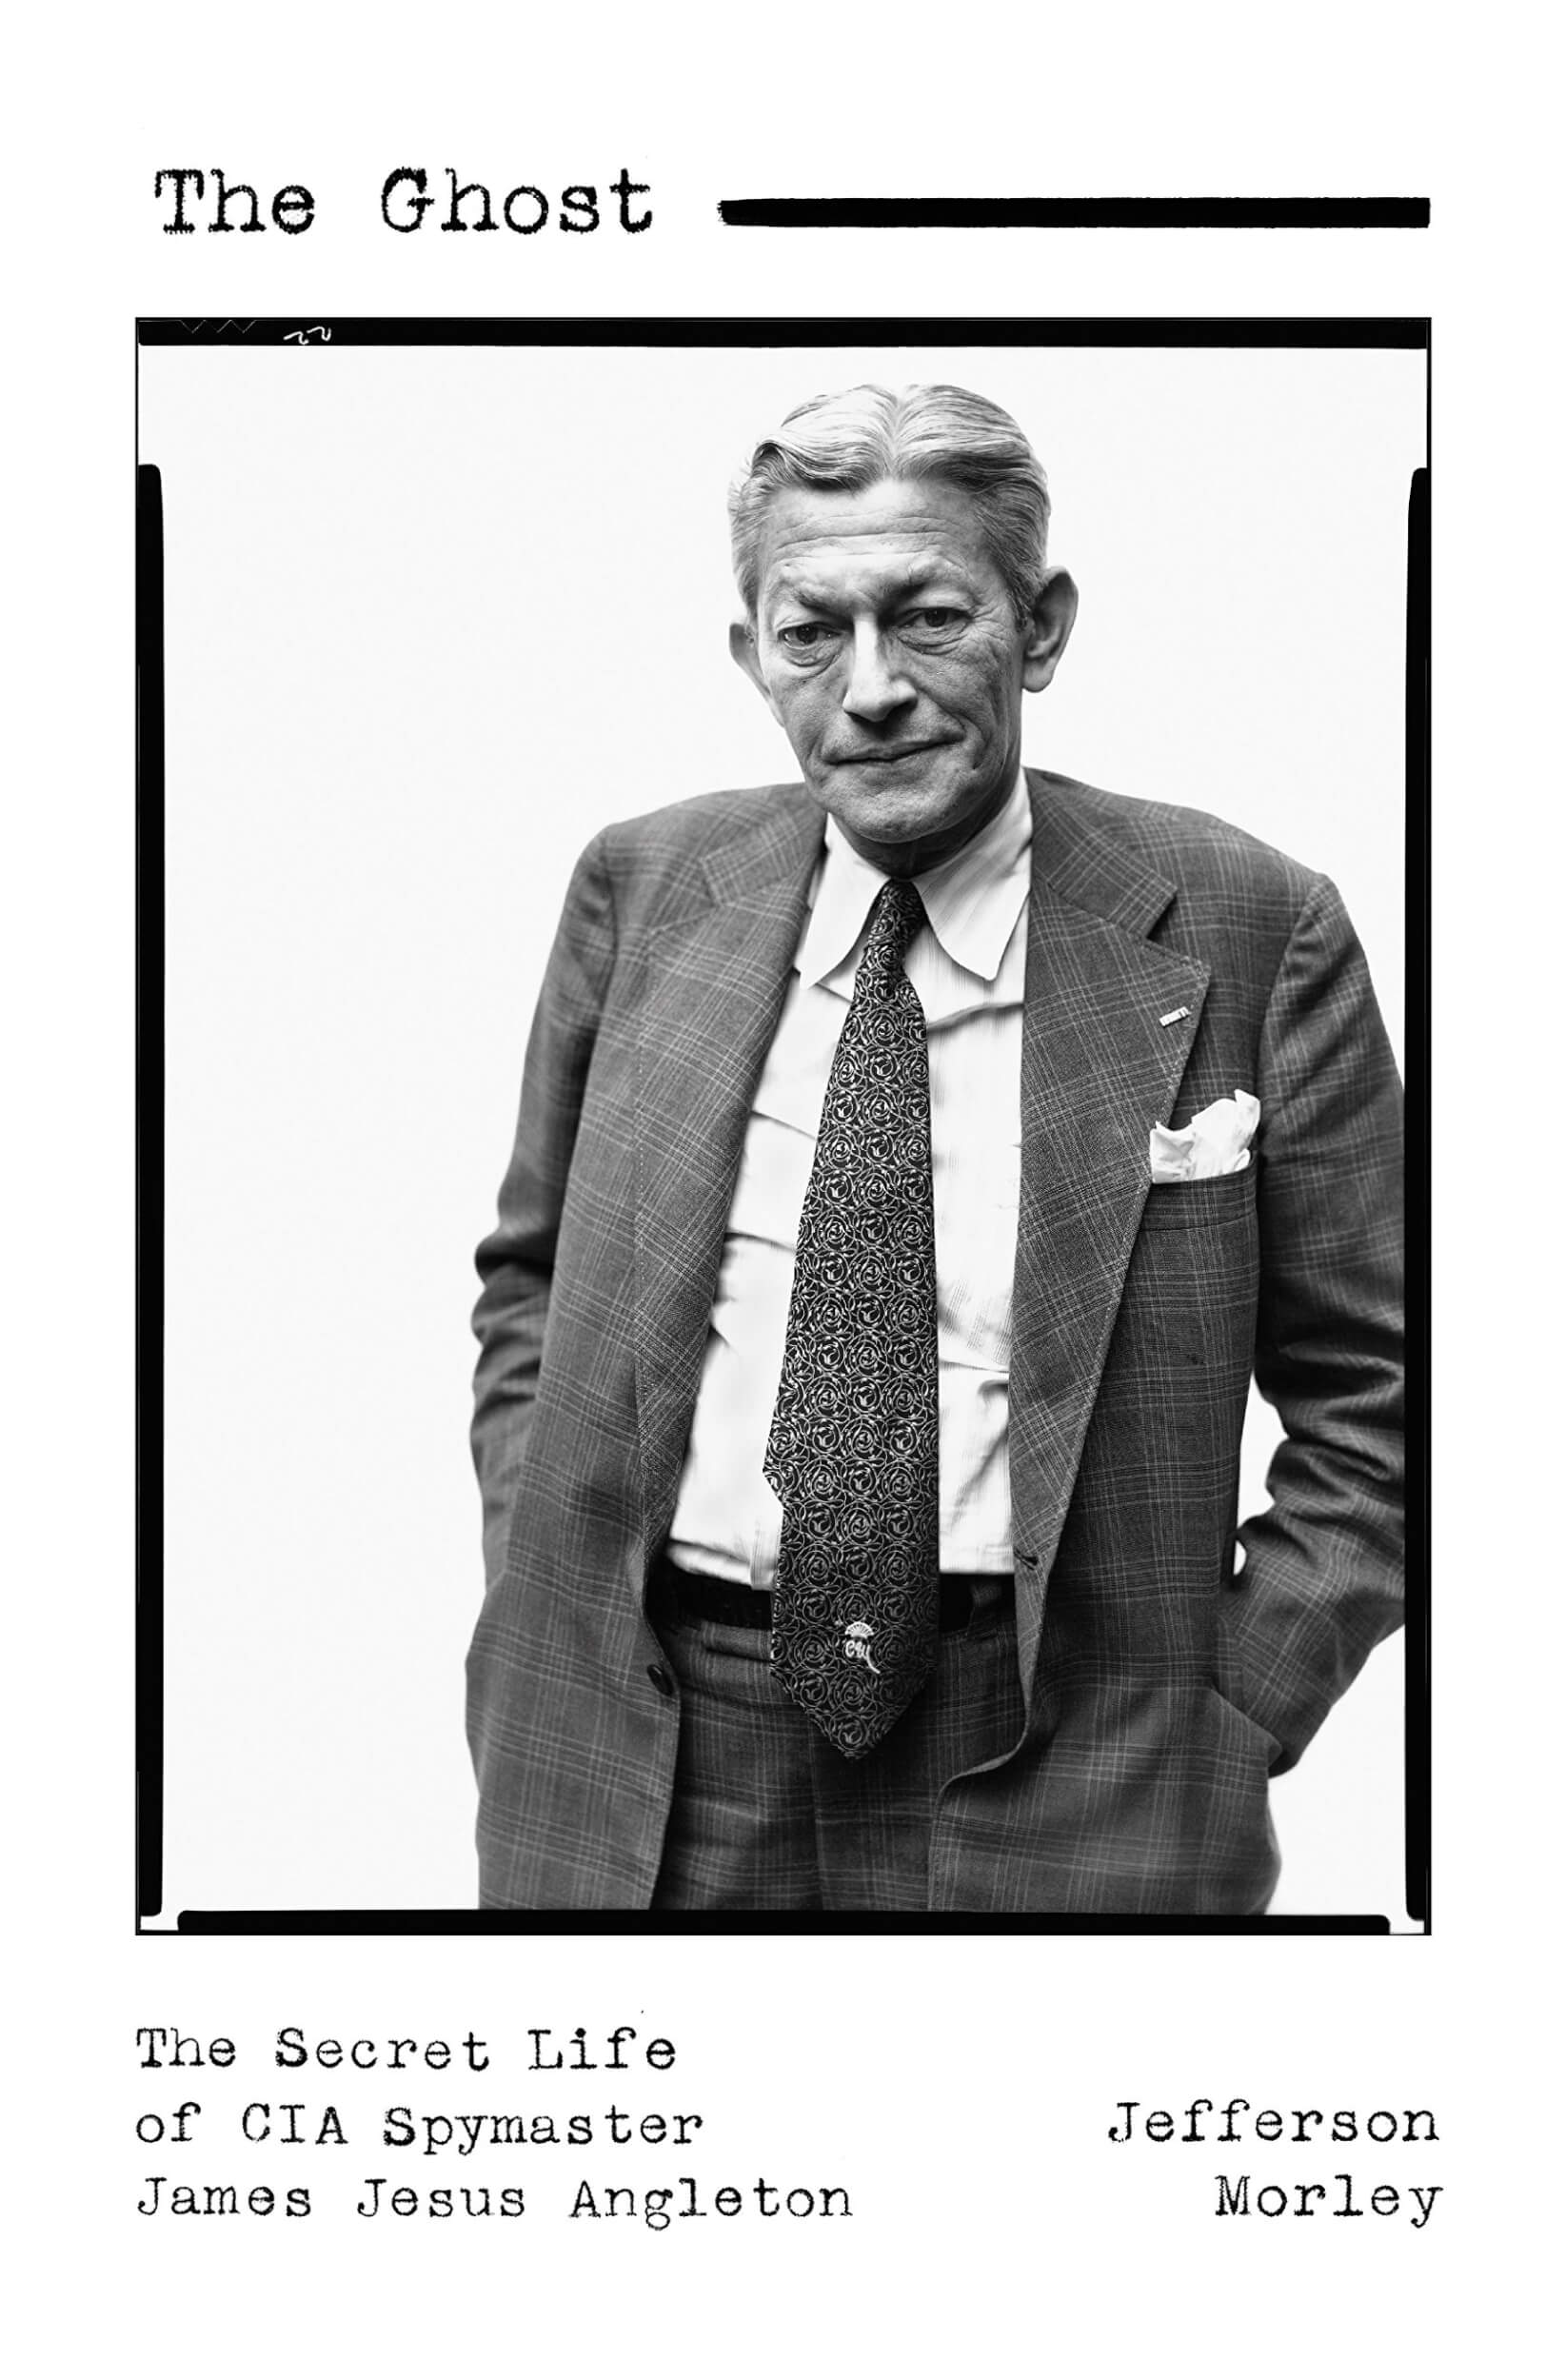 The goy and the golem: James Angleton and the rise of Israel – Mondoweiss